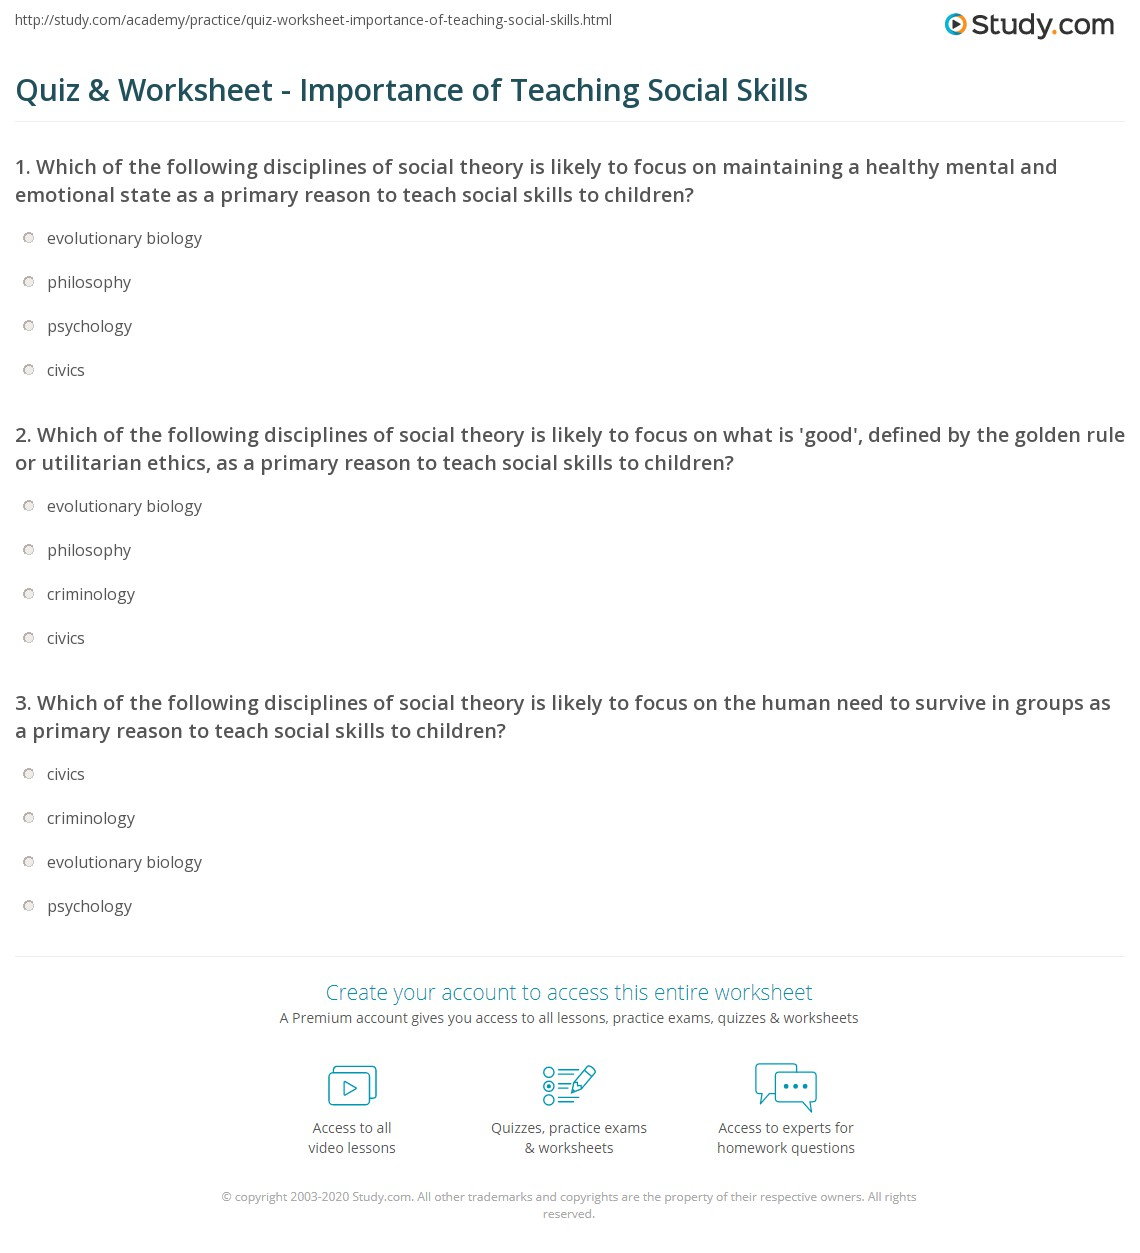 Worksheets Social Skills Worksheets For Adults quiz worksheet importance of teaching social skills study com which the following disciplines theory is likely to focus on what good defined by golden rule or utilitarian